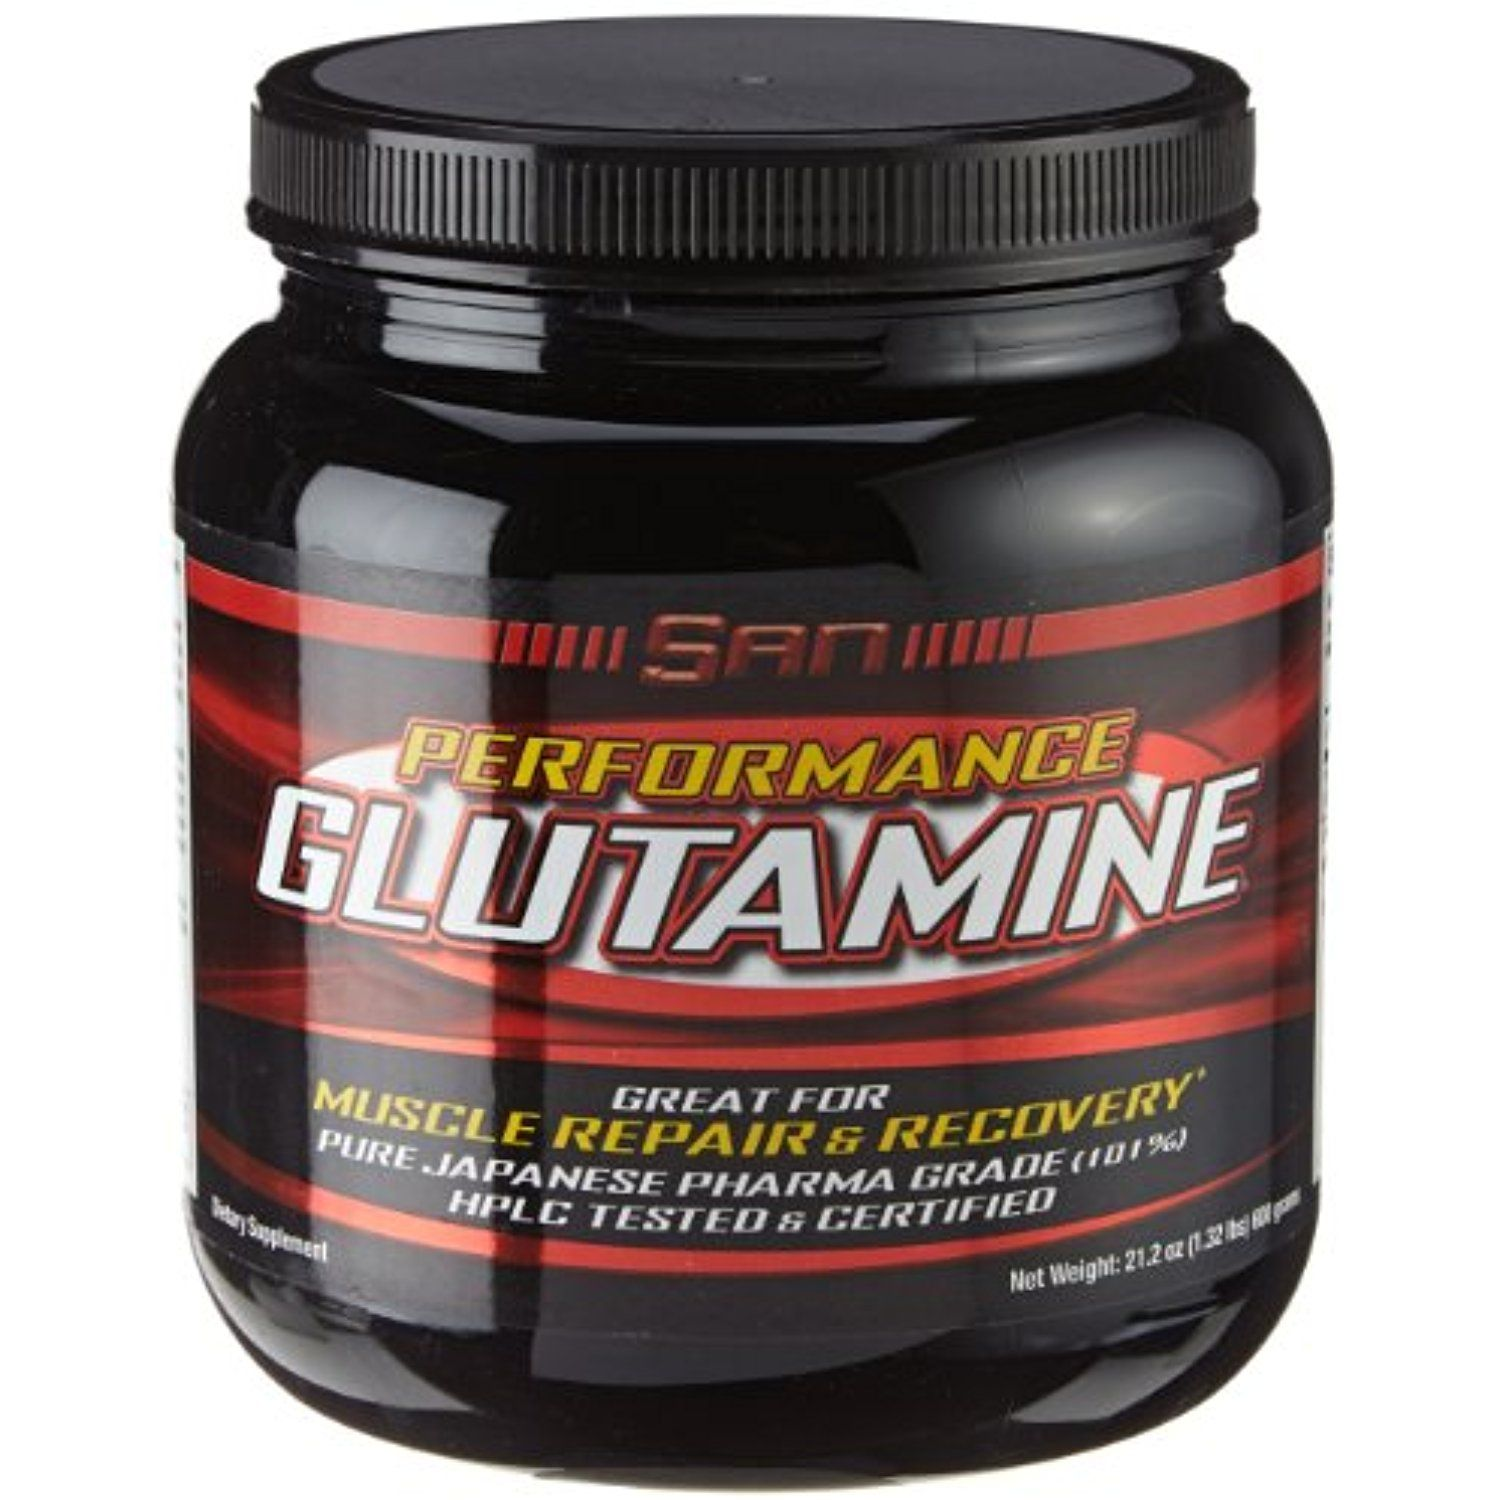 San Nutrition Performance Glutamine Pharmaceutical Grade L Glutamine Supplement 120 Servings Check This Awesome P Sports Nutrition Supplements Performance